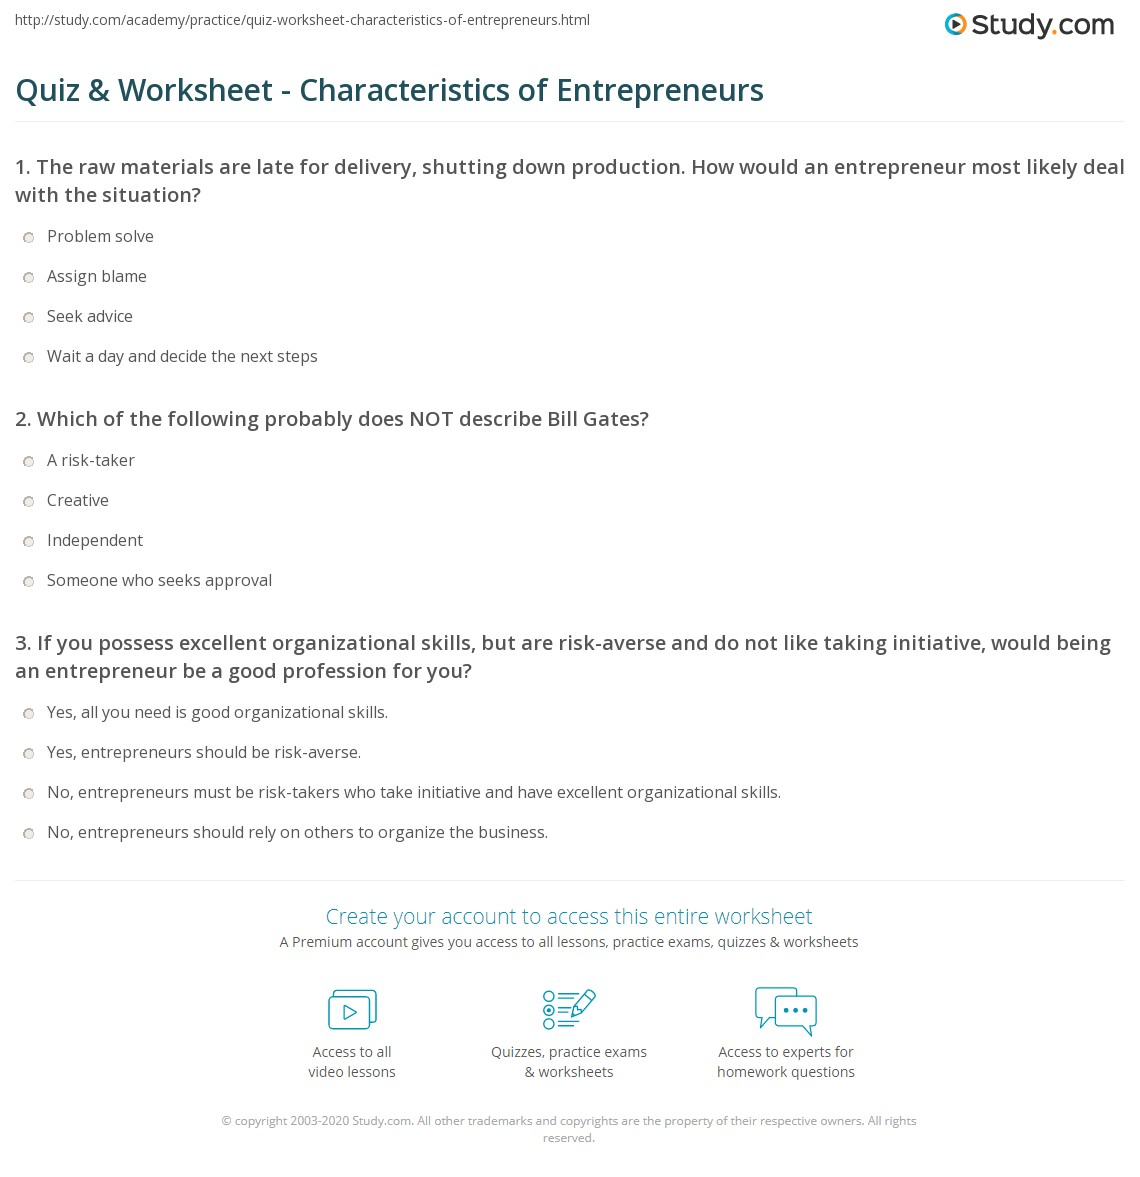 Quiz Worksheet Characteristics Of Entrepreneurs Study Com